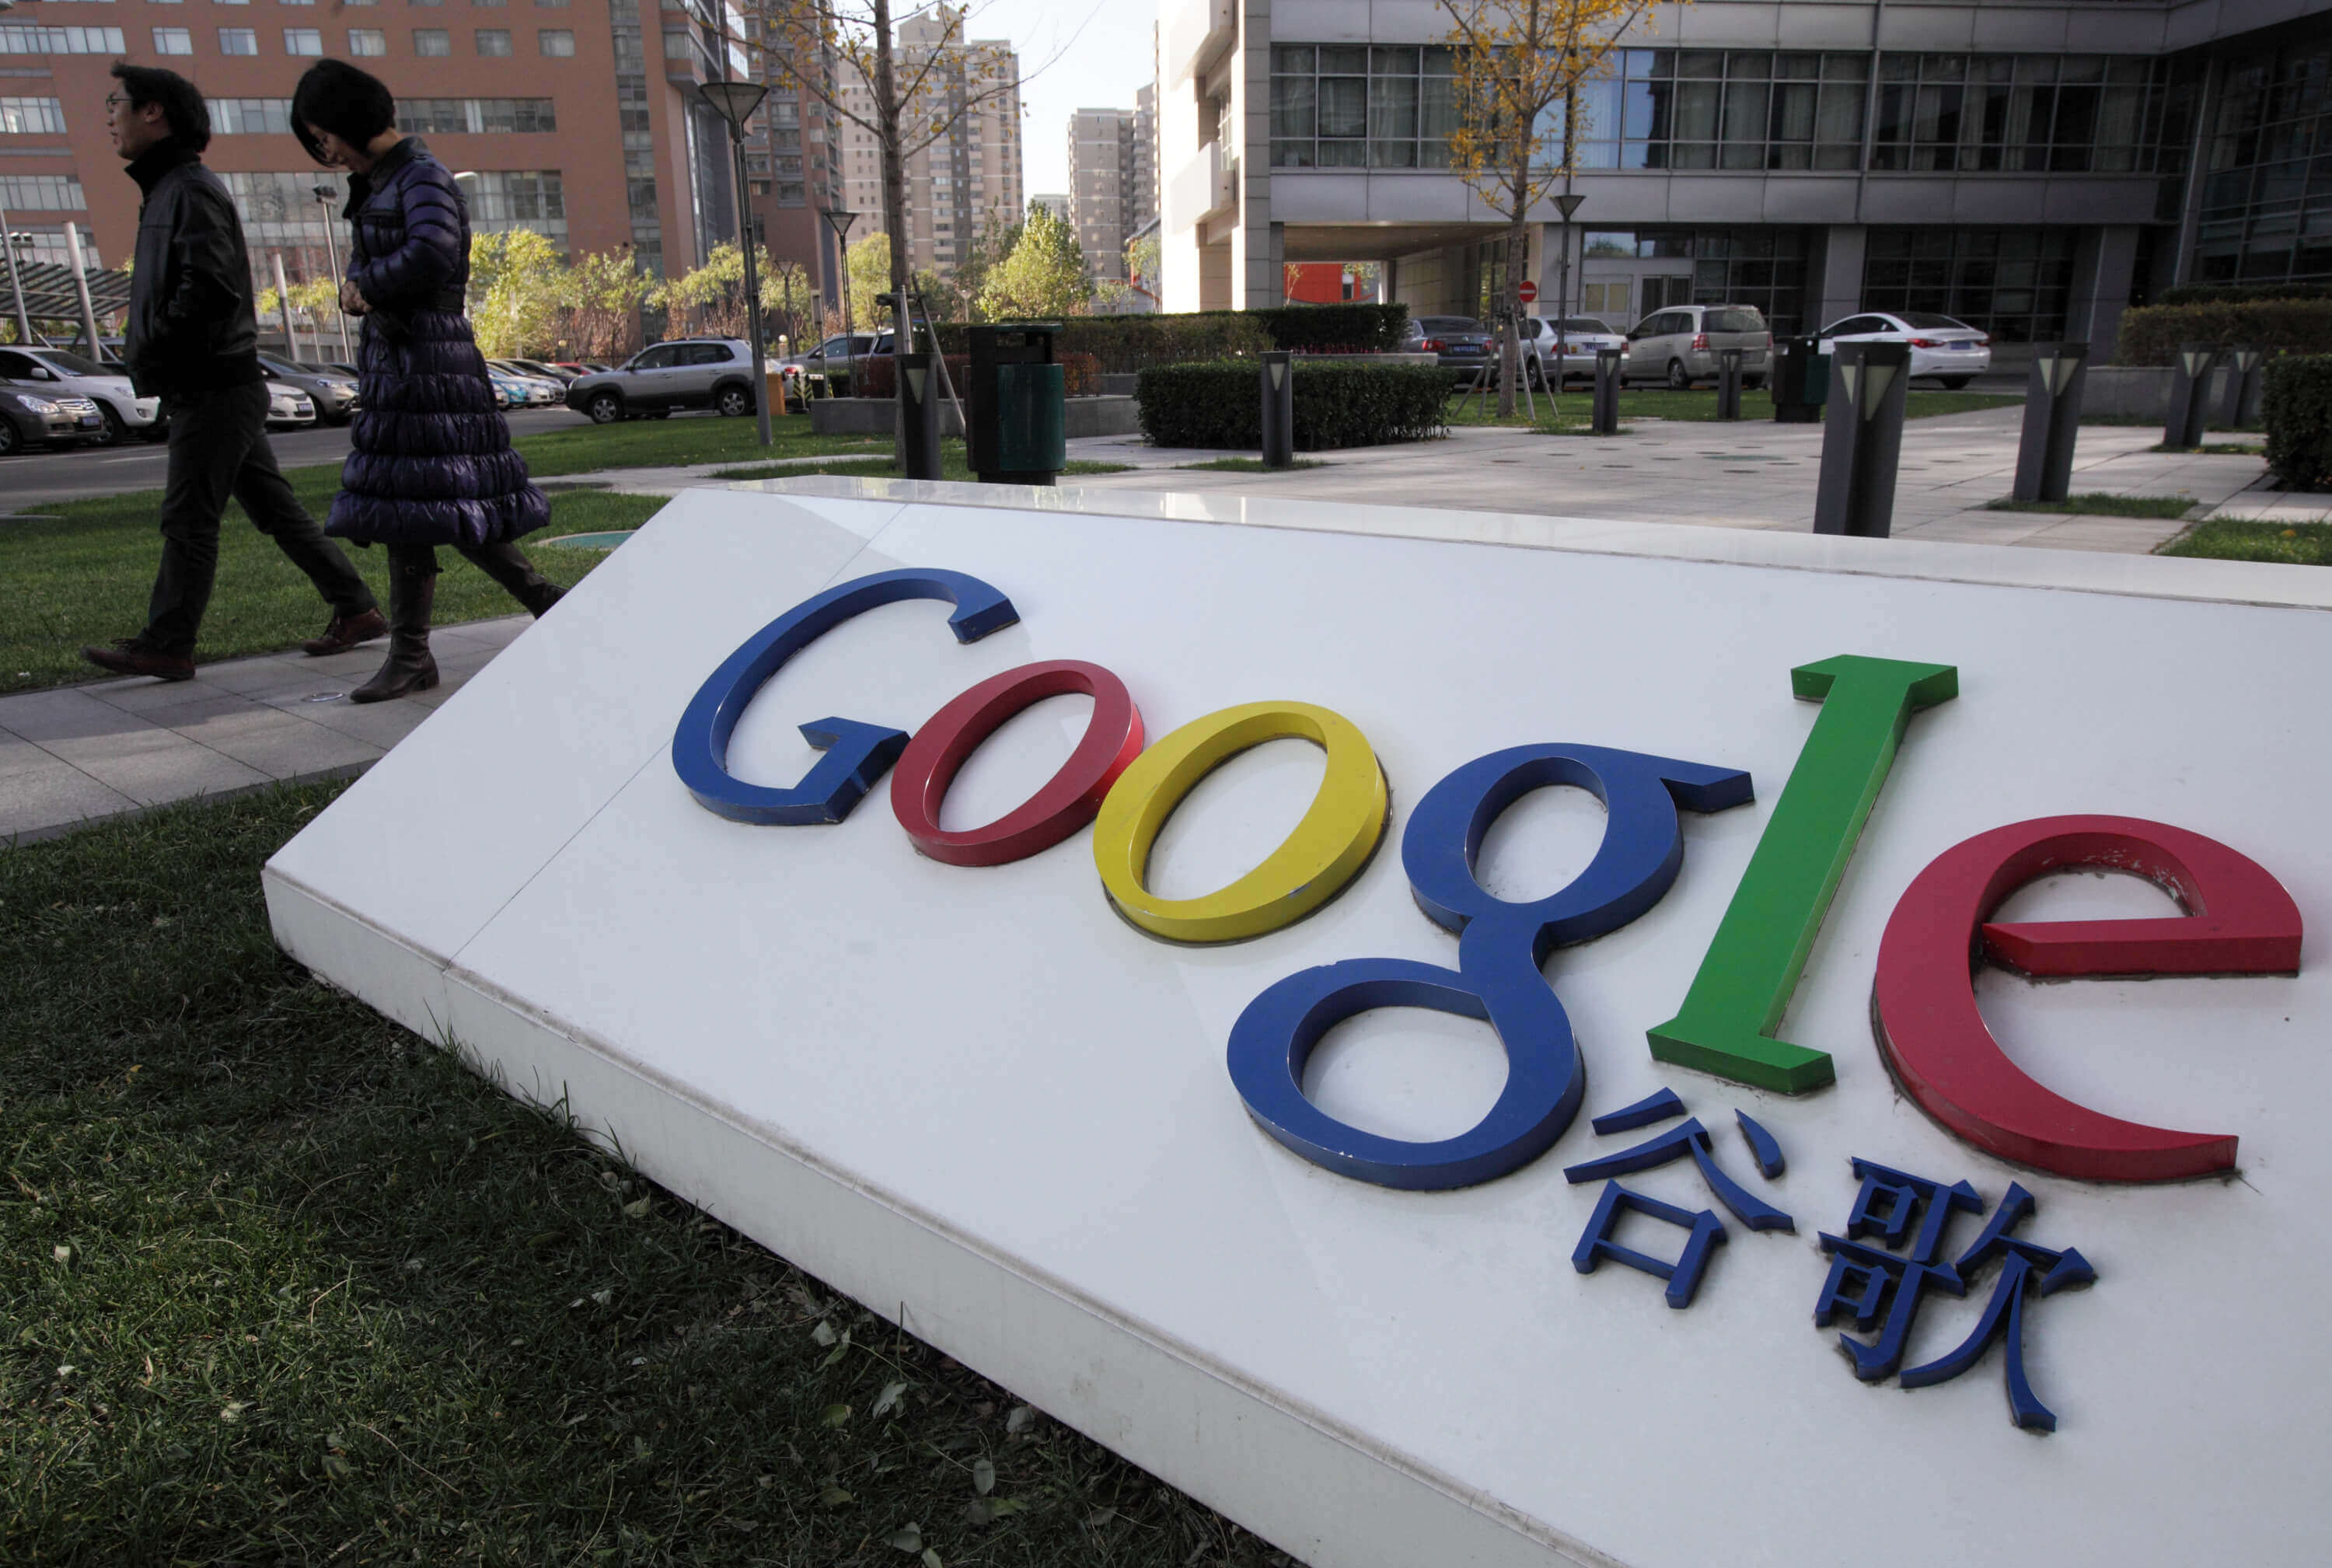 No, Google is not returning to China, censored or otherwise